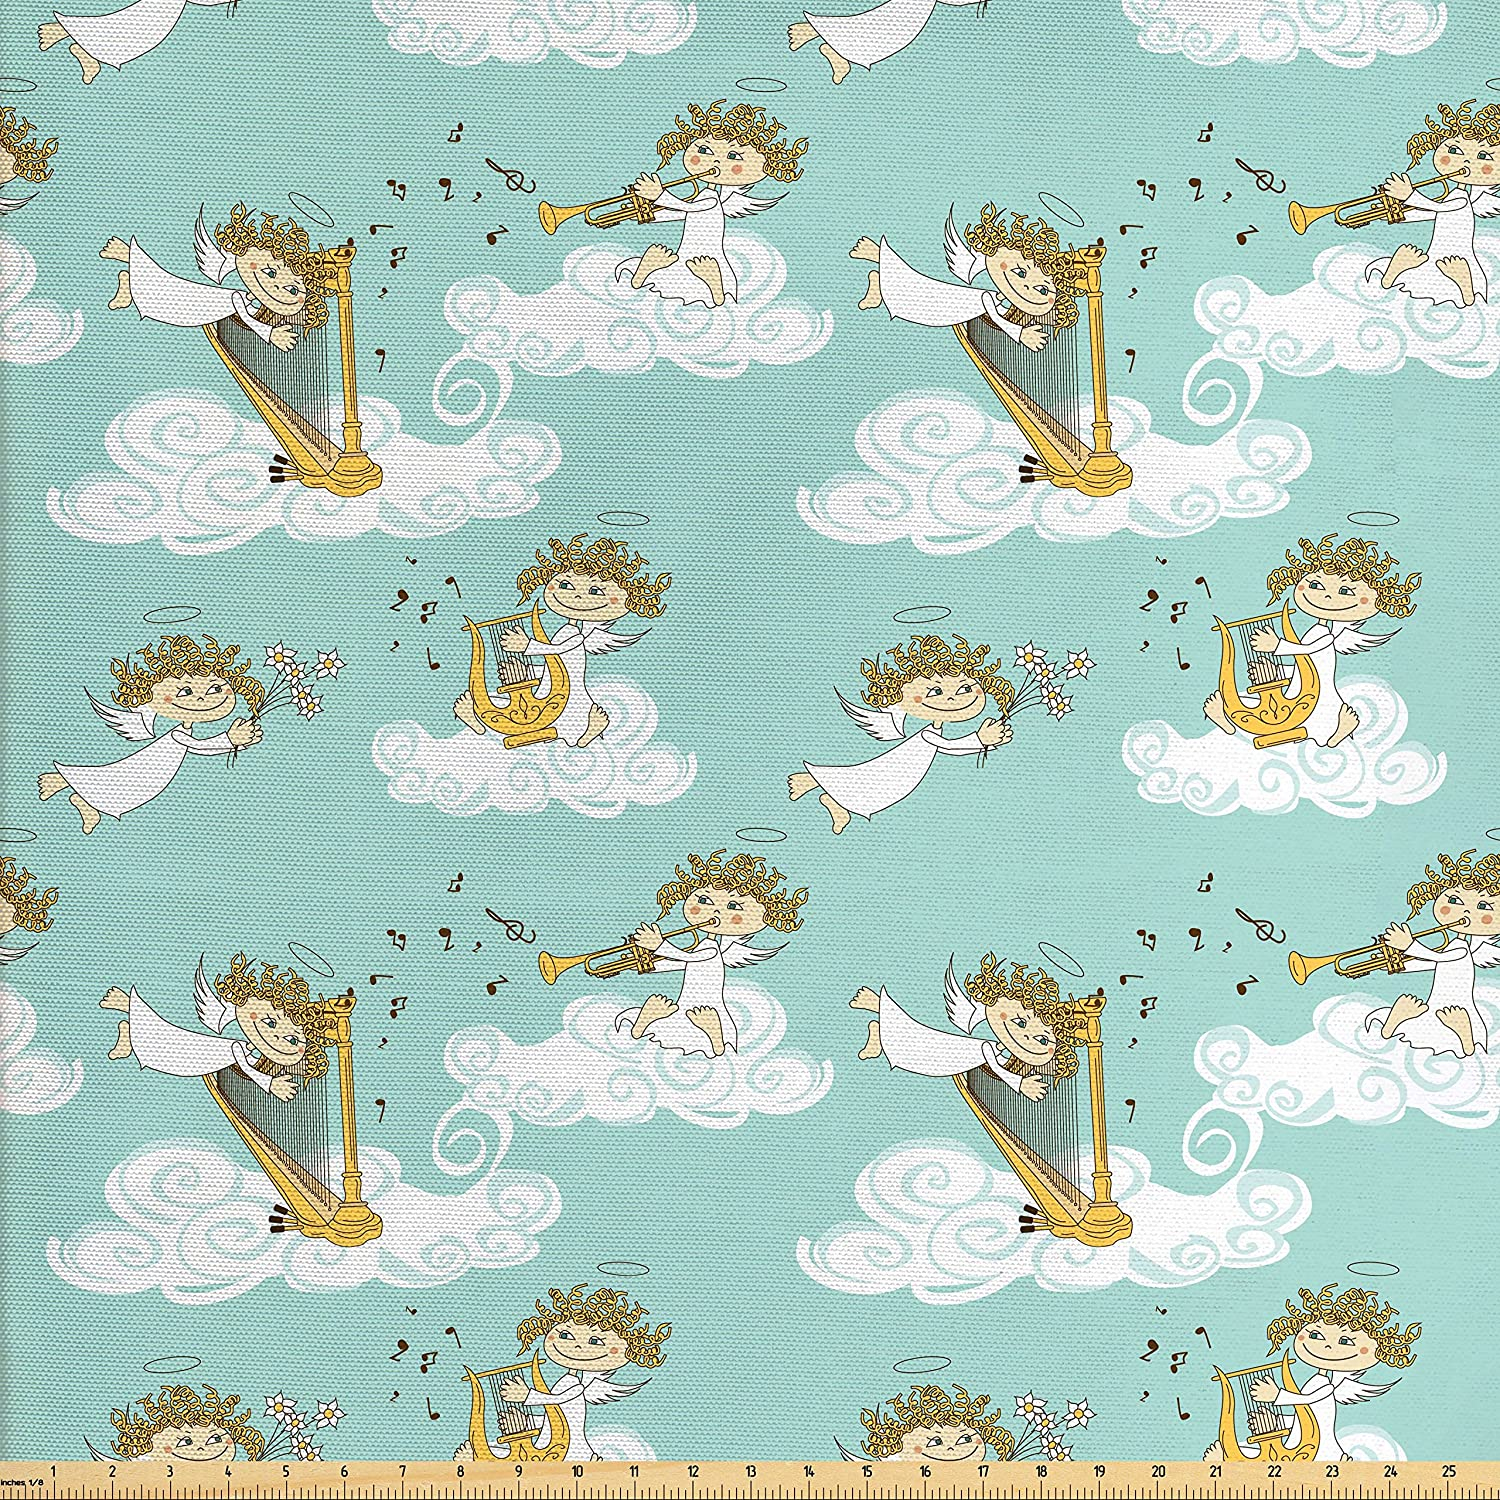 Ambesonne Angel Fabric by The Yard, Angels Playing Harp in Sky Clouds Myth Folk Lyre Folk Music Band Joy, Decorative Fabric for Upholstery and Home Accents, Seafoam White Earth Yellow